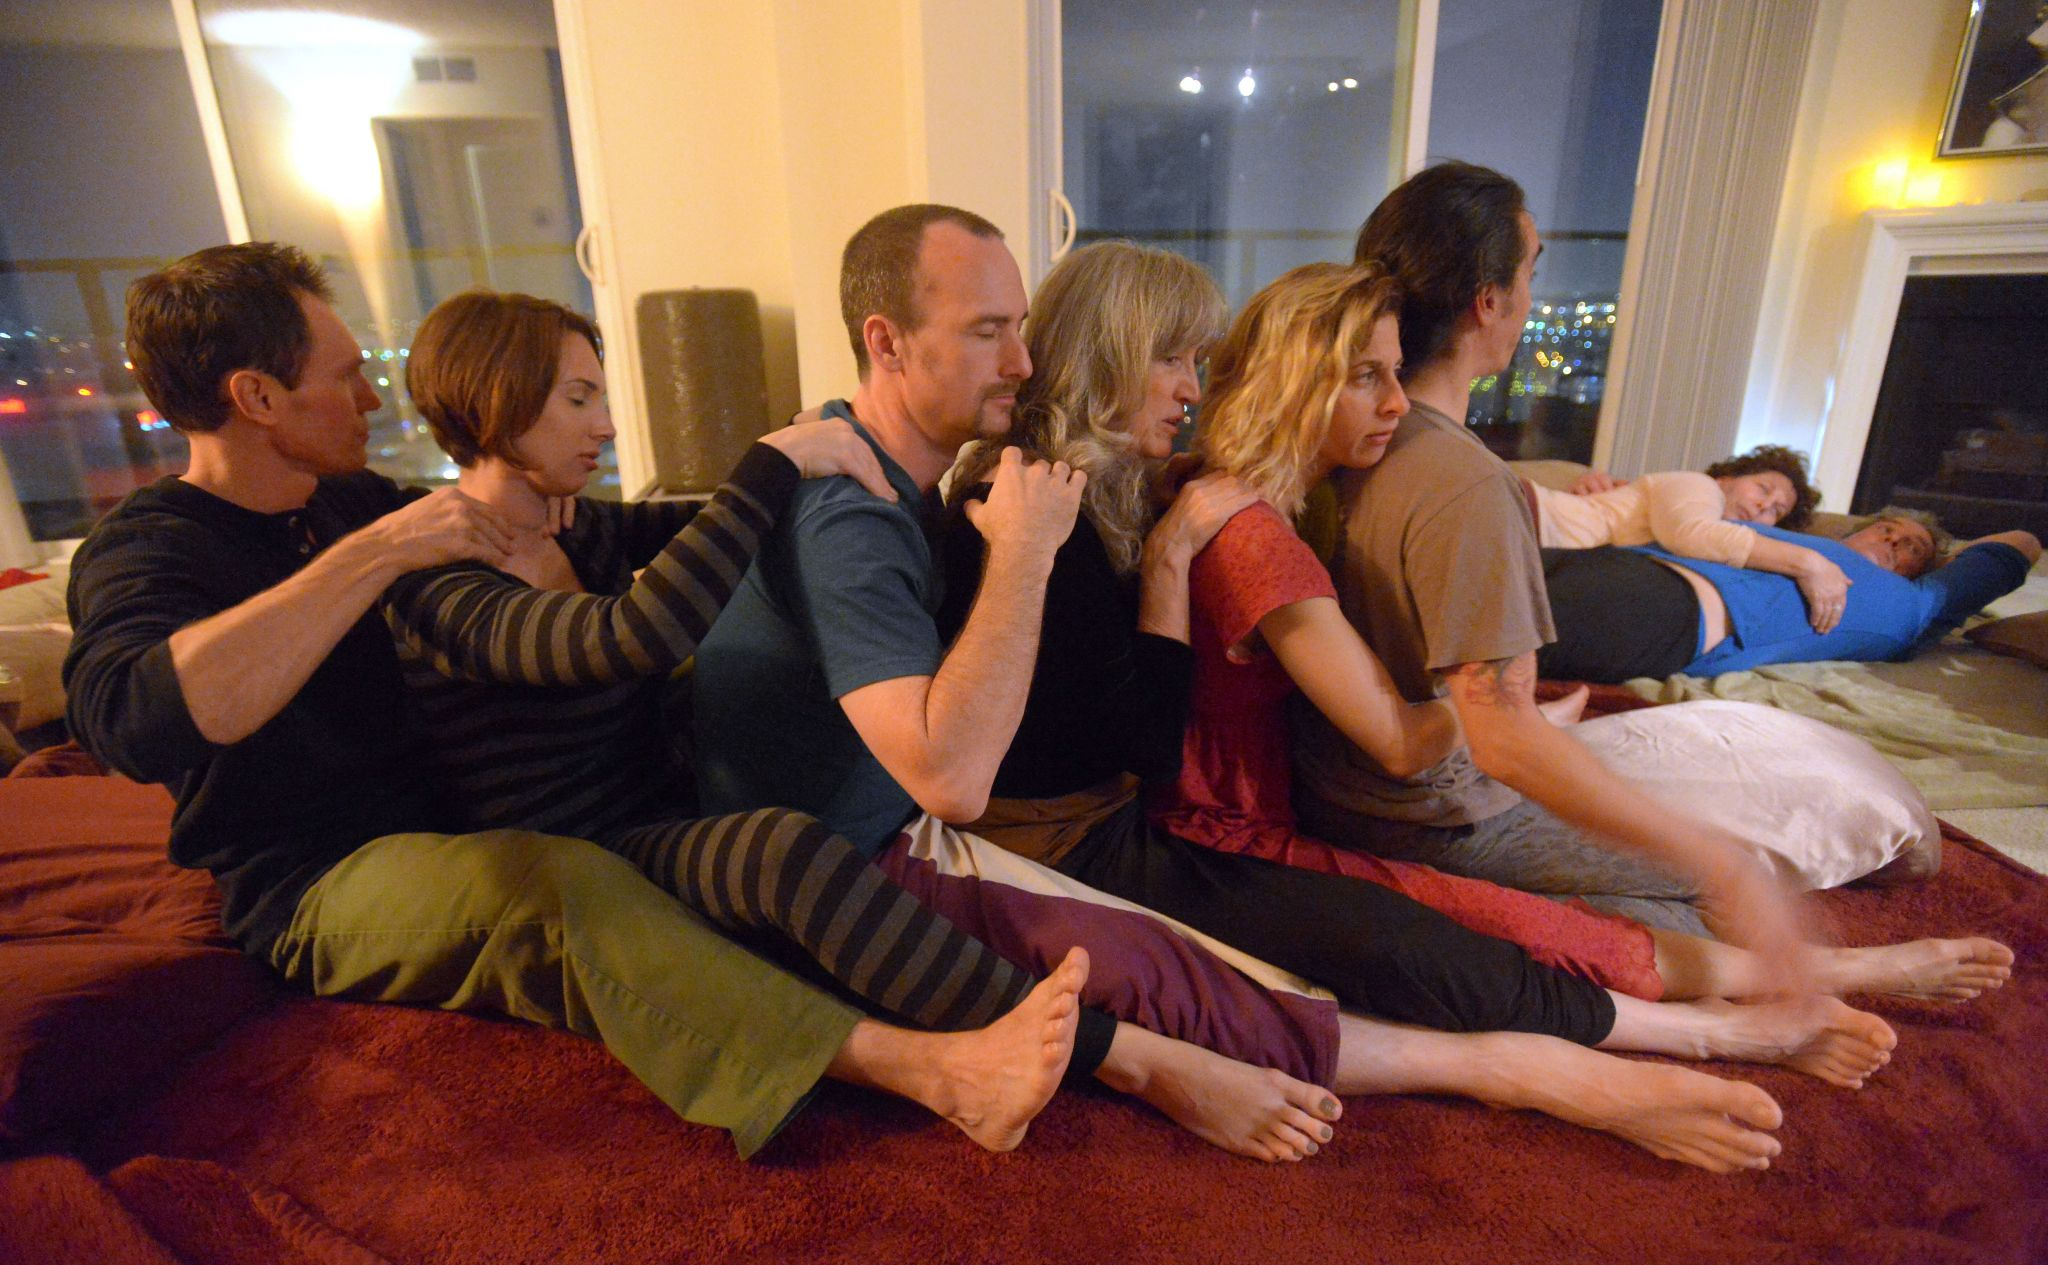 I Cuddled With Strangers At A Cuddle Party San Francisco S Latest Wellness Trend Sfgate